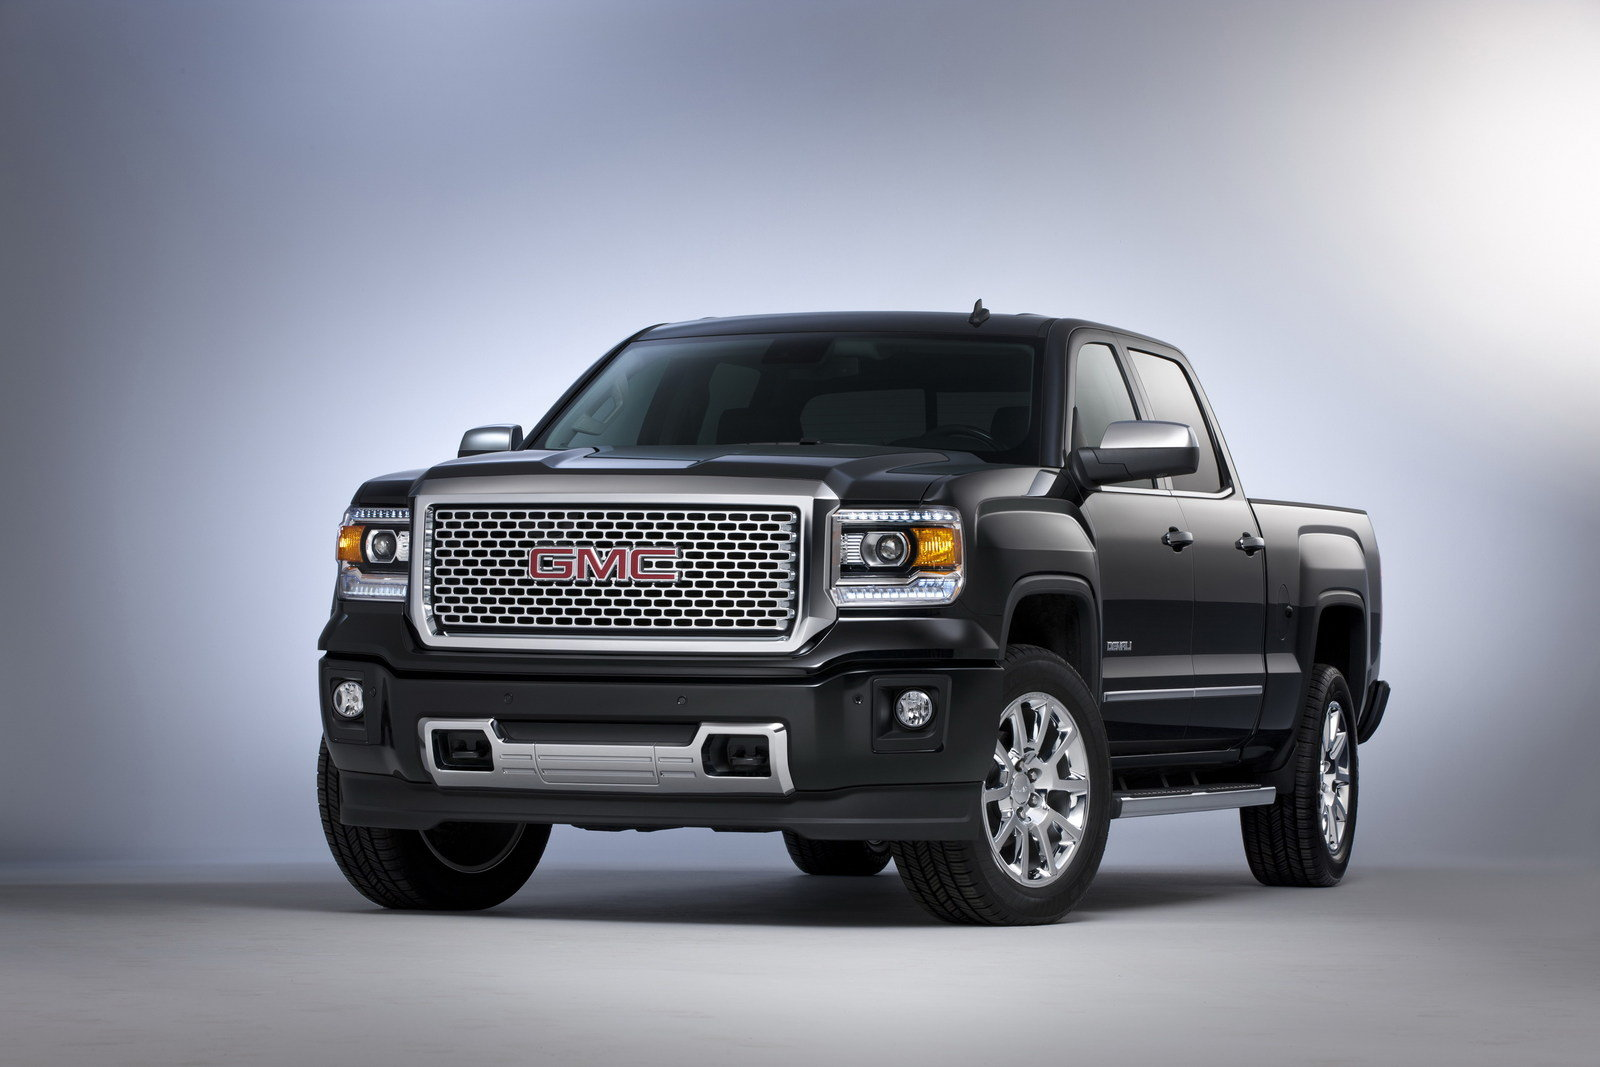 gmc sierra 1500 dena 4_1600x0w gmc sierra reviews, specs & prices top speed  at panicattacktreatment.co